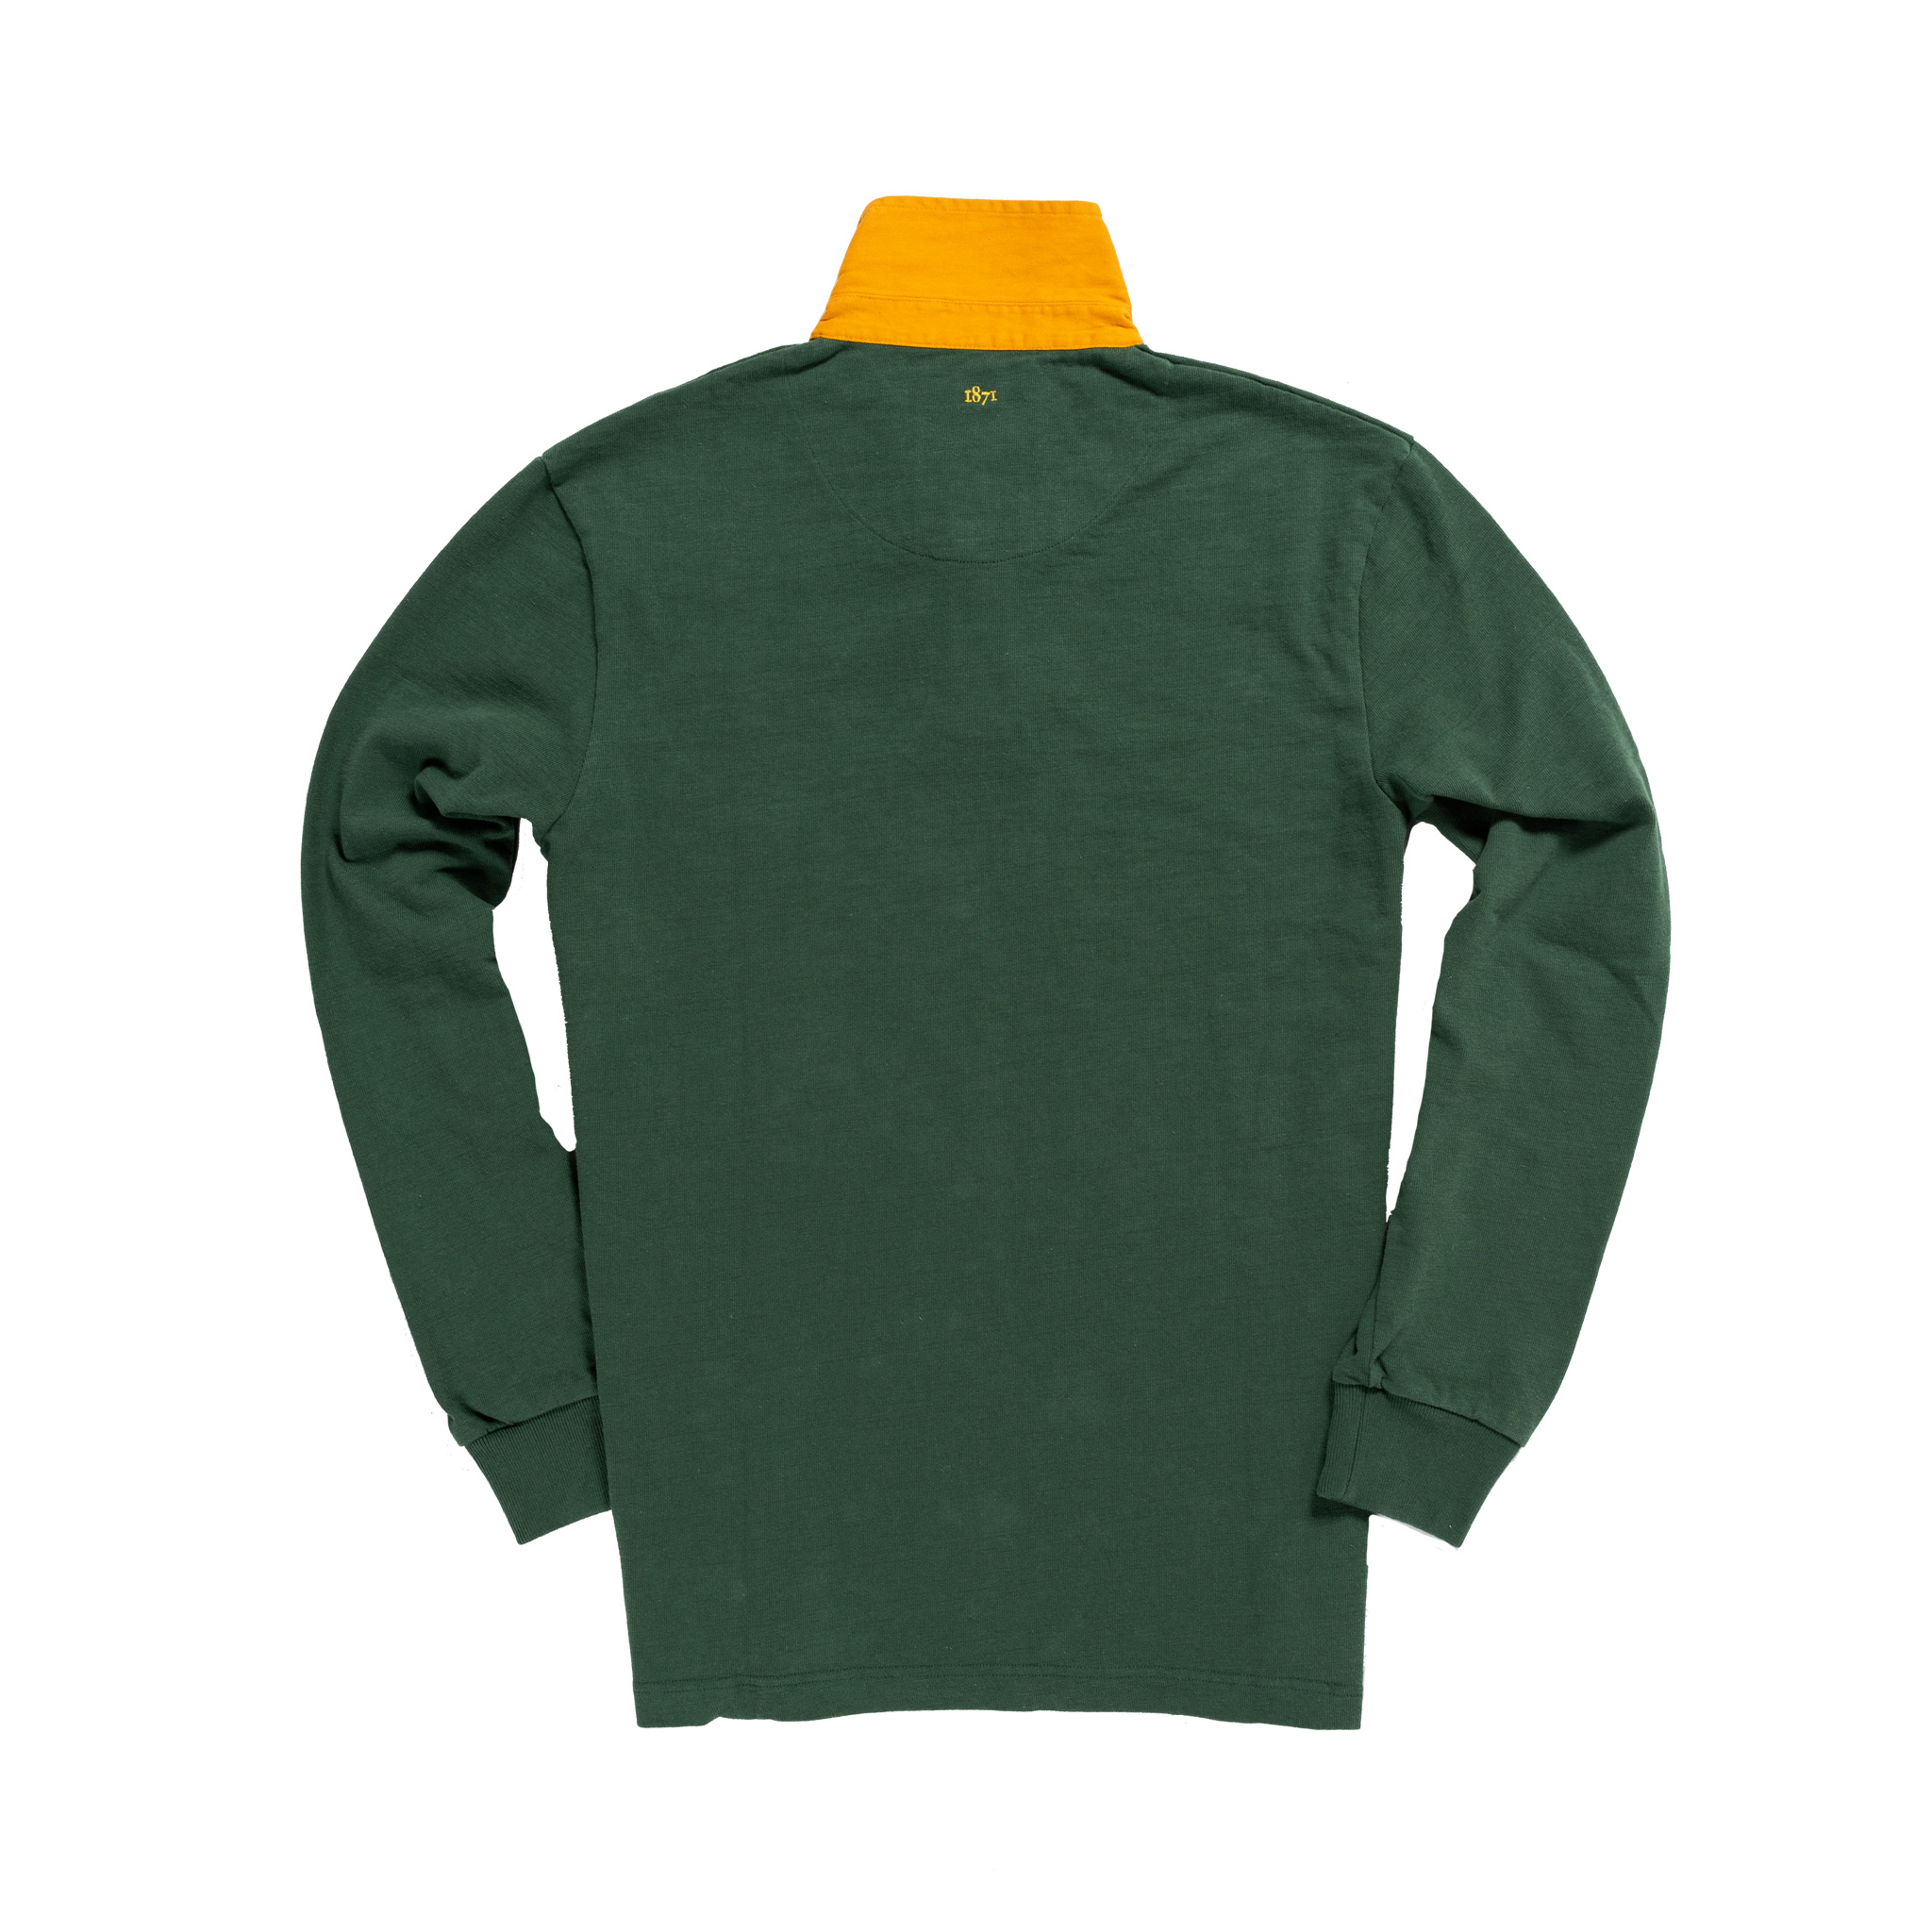 Classic Green with Yellow Collar 1871 Vintage Rugby Shirt